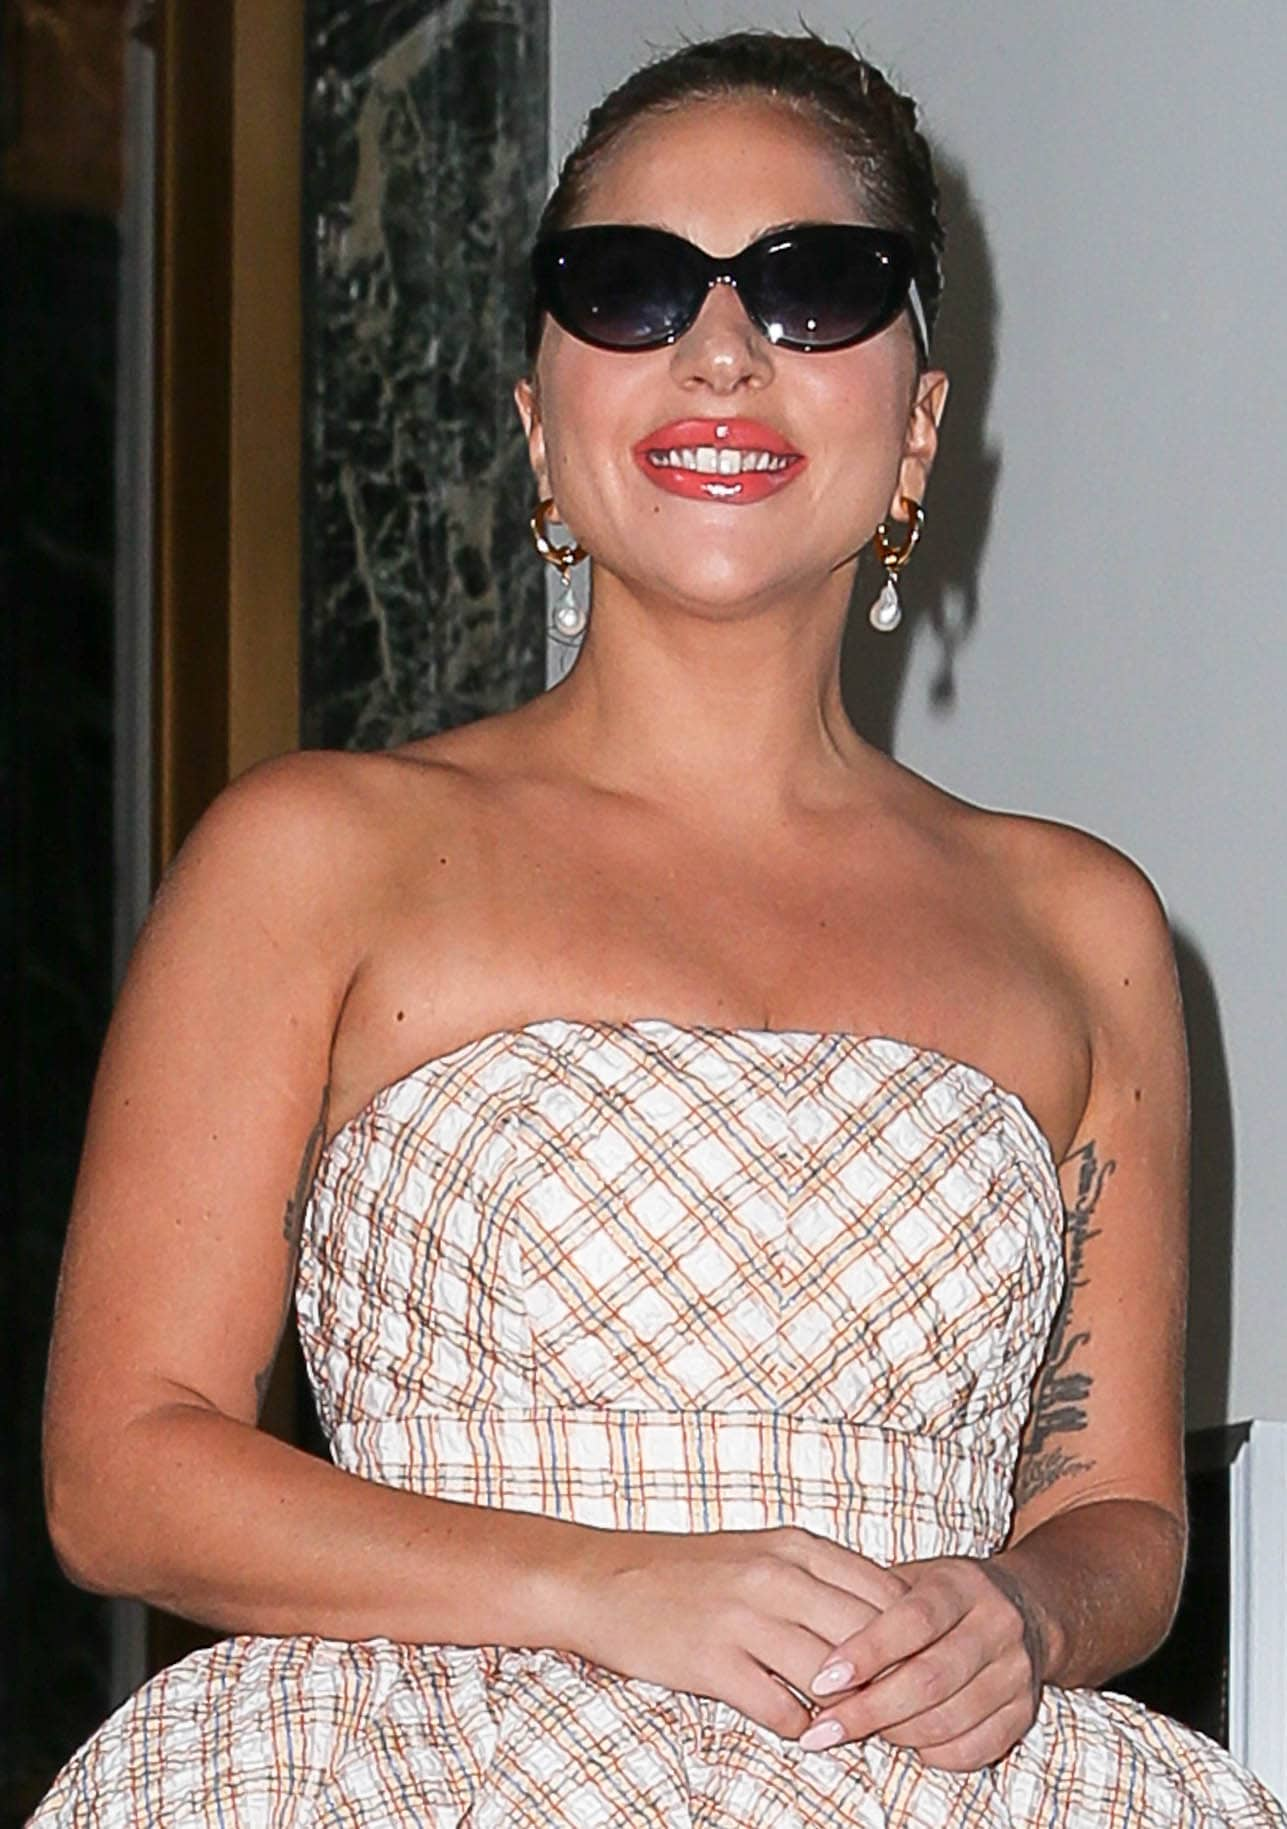 Lady Gaga accessorizes with pearl drop earrings and glams up further with a high bun and red lip gloss